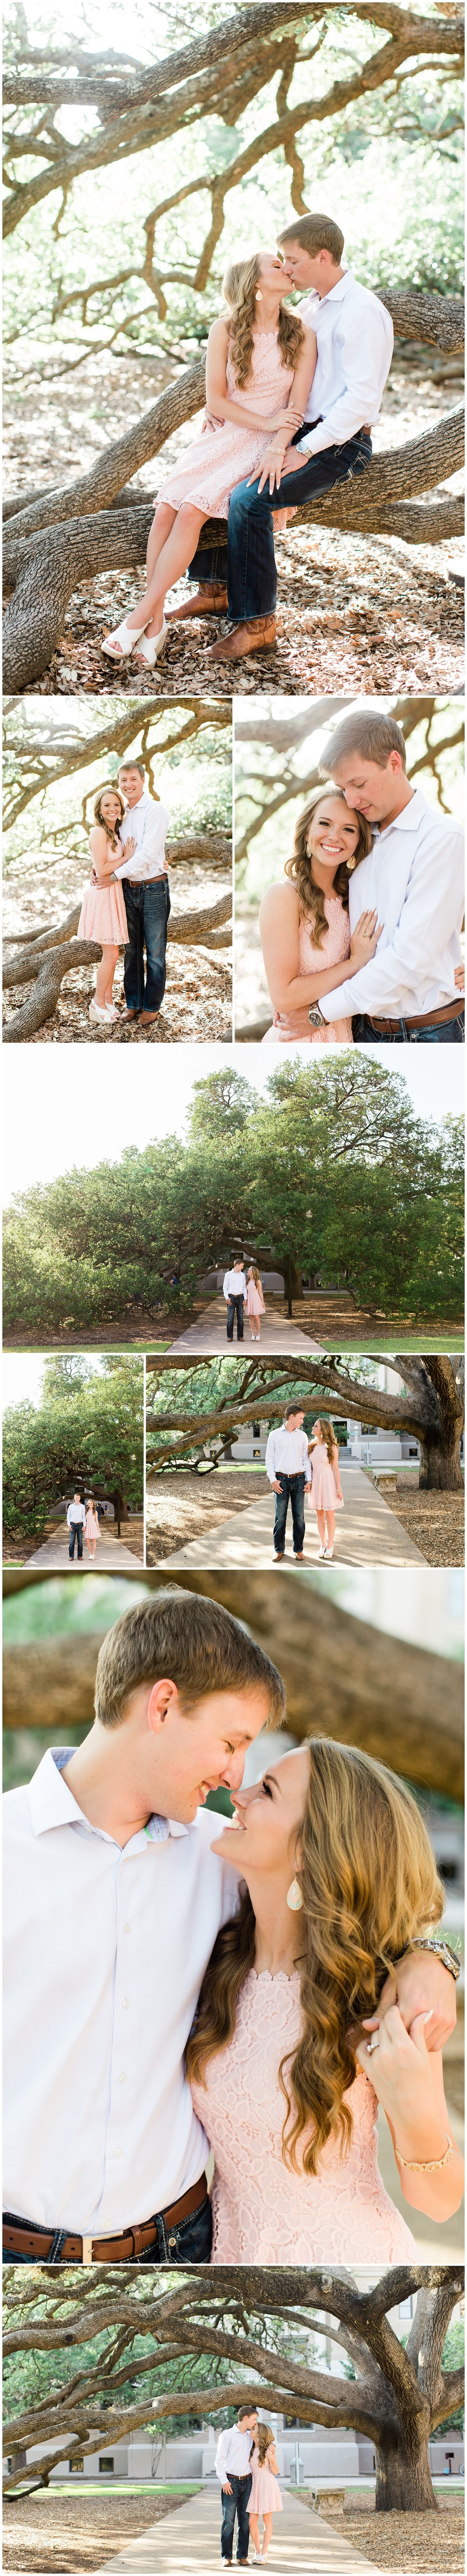 Texas_A&M_Engagement_Session_Kristina_Ross_Photography_0004.jpg